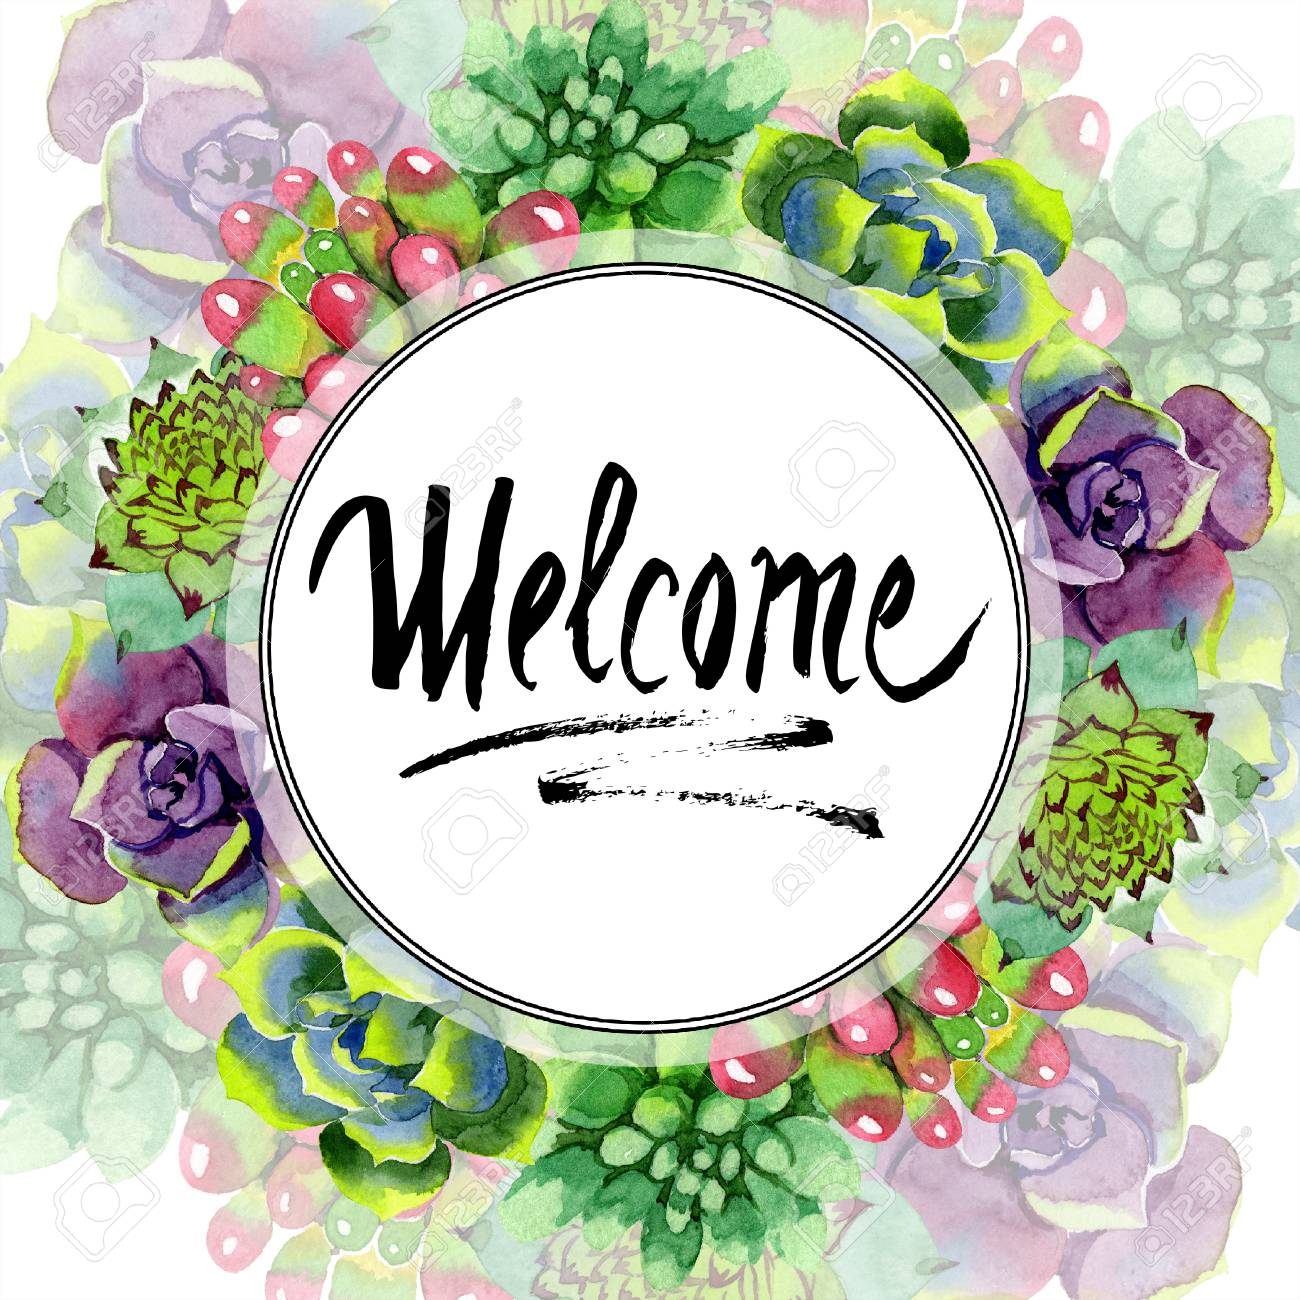 Amazing Succulent Welcome Handwriting Monogram Calligraphy Stock Photo Picture And Royalty Free Image Image 113293797